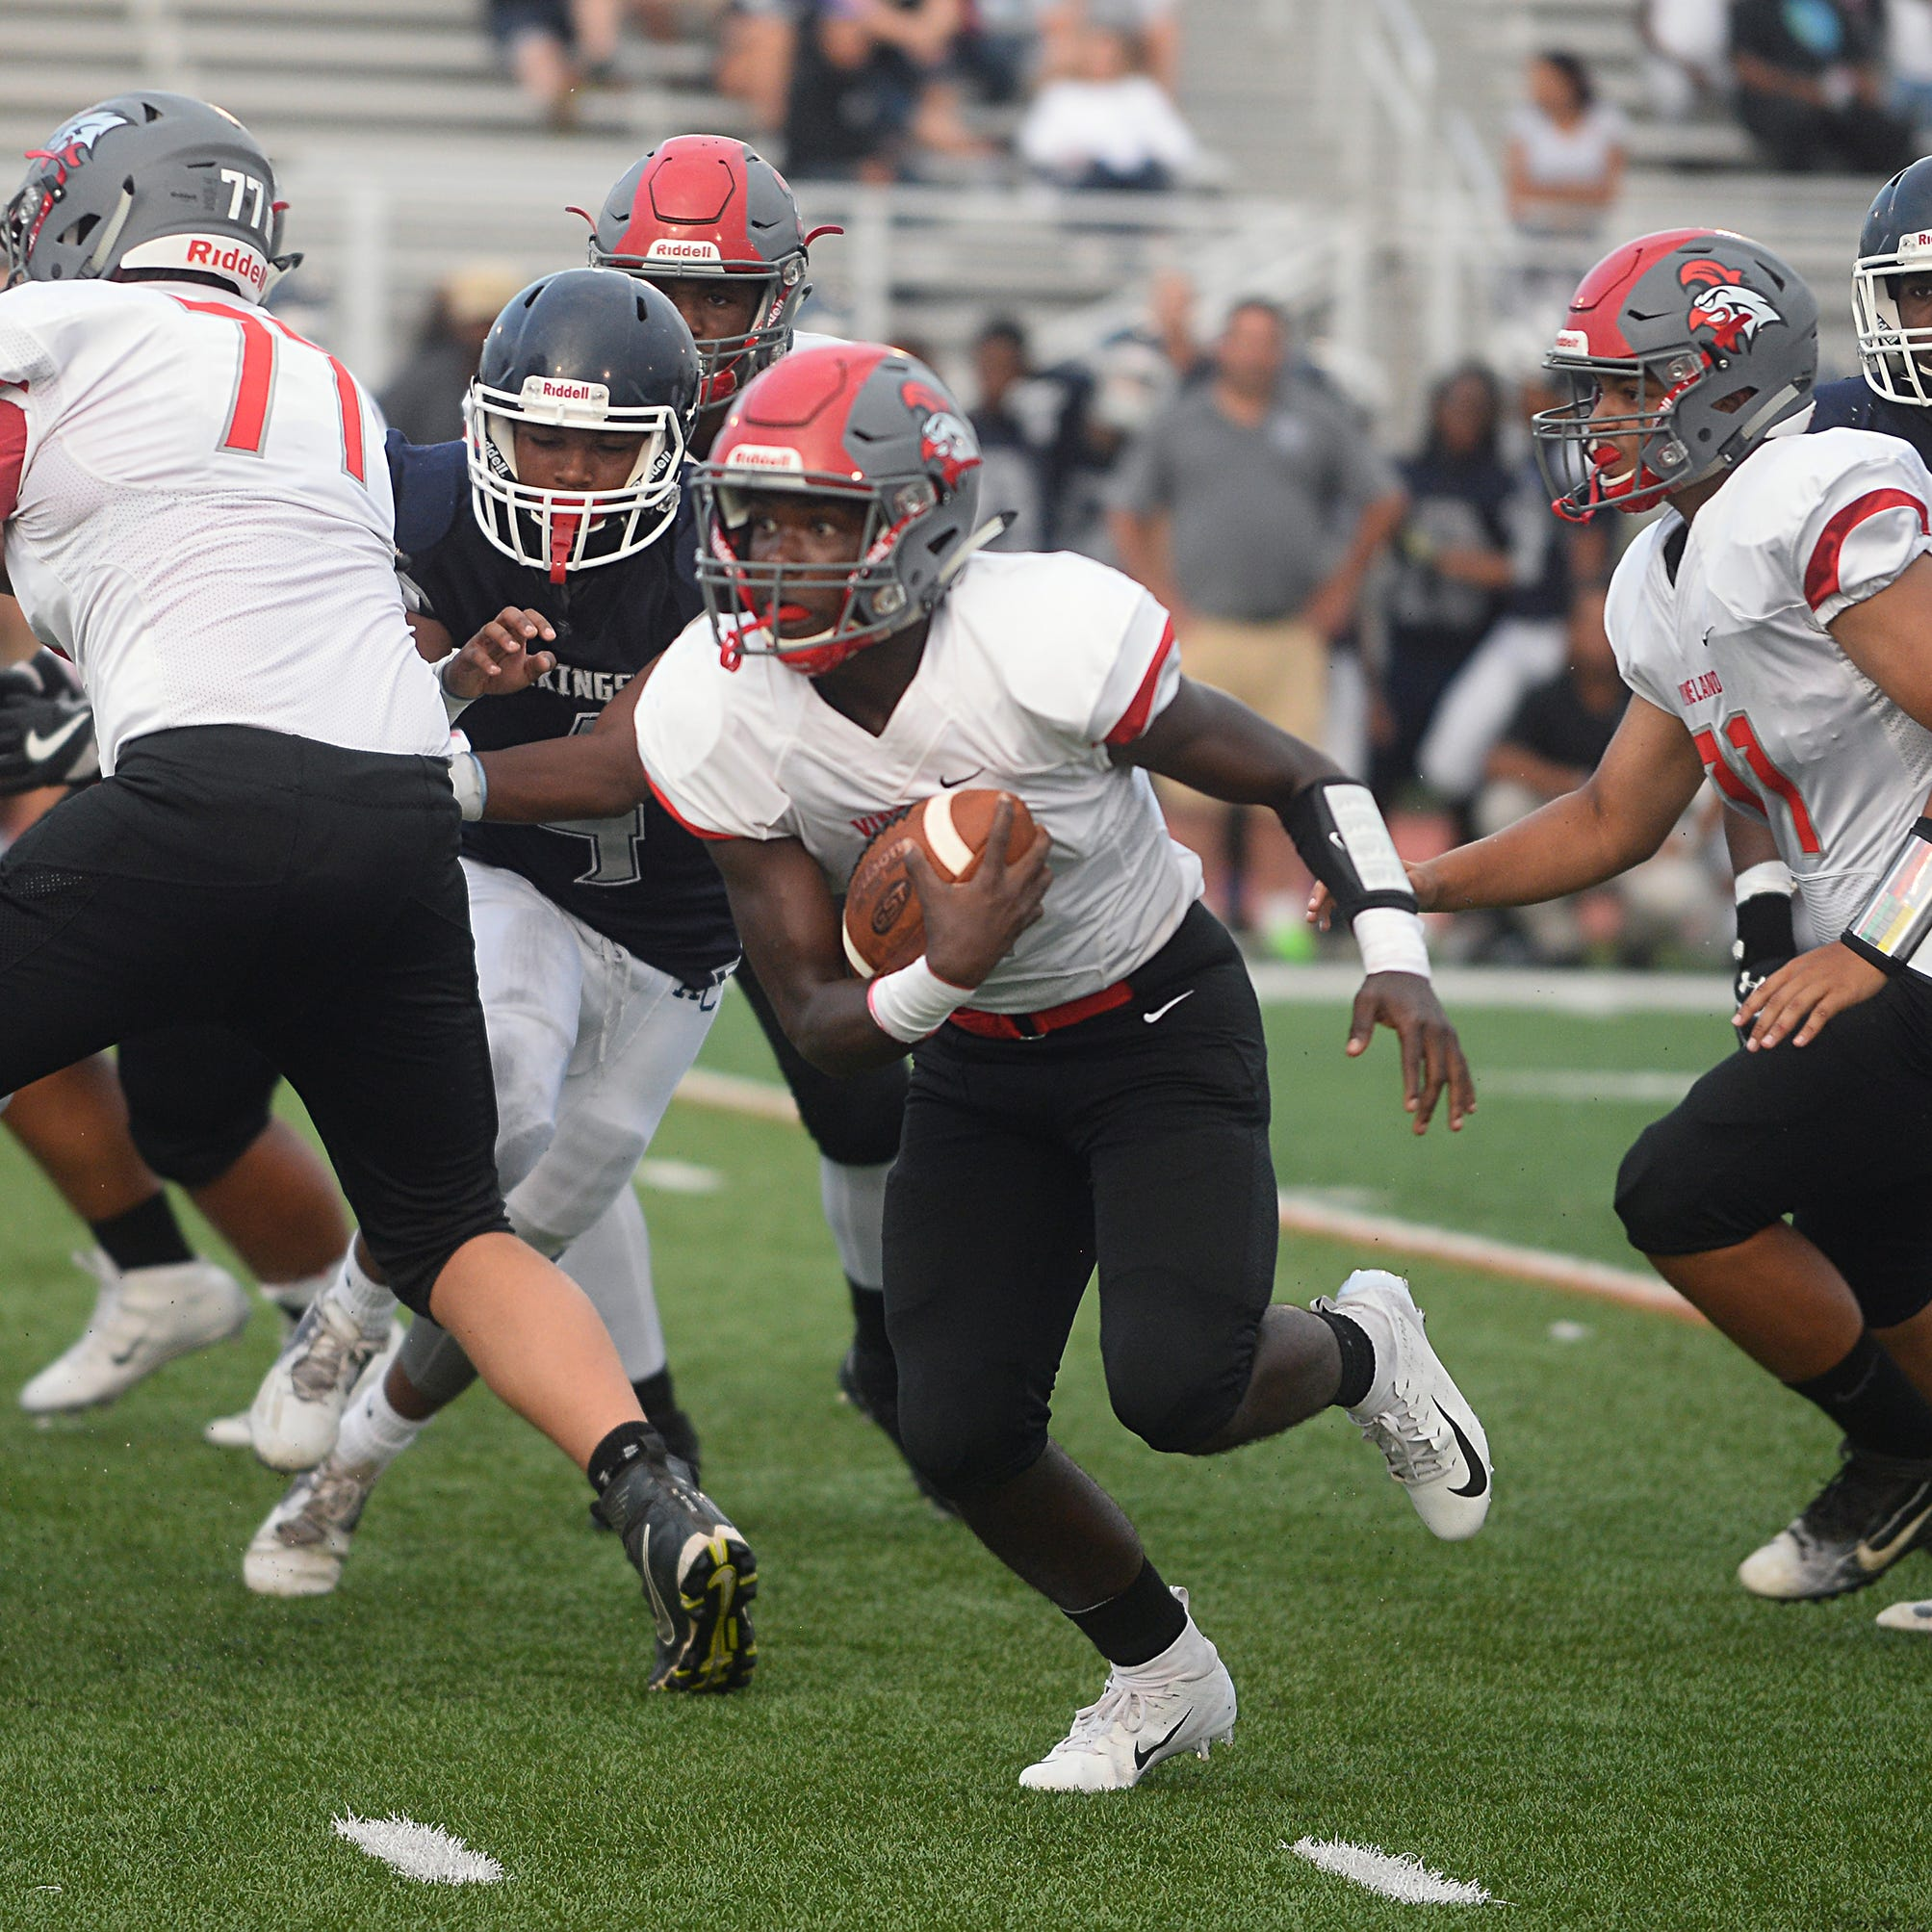 H.S. football: Vineland's Arthur sailed up depth chart with a little help from water